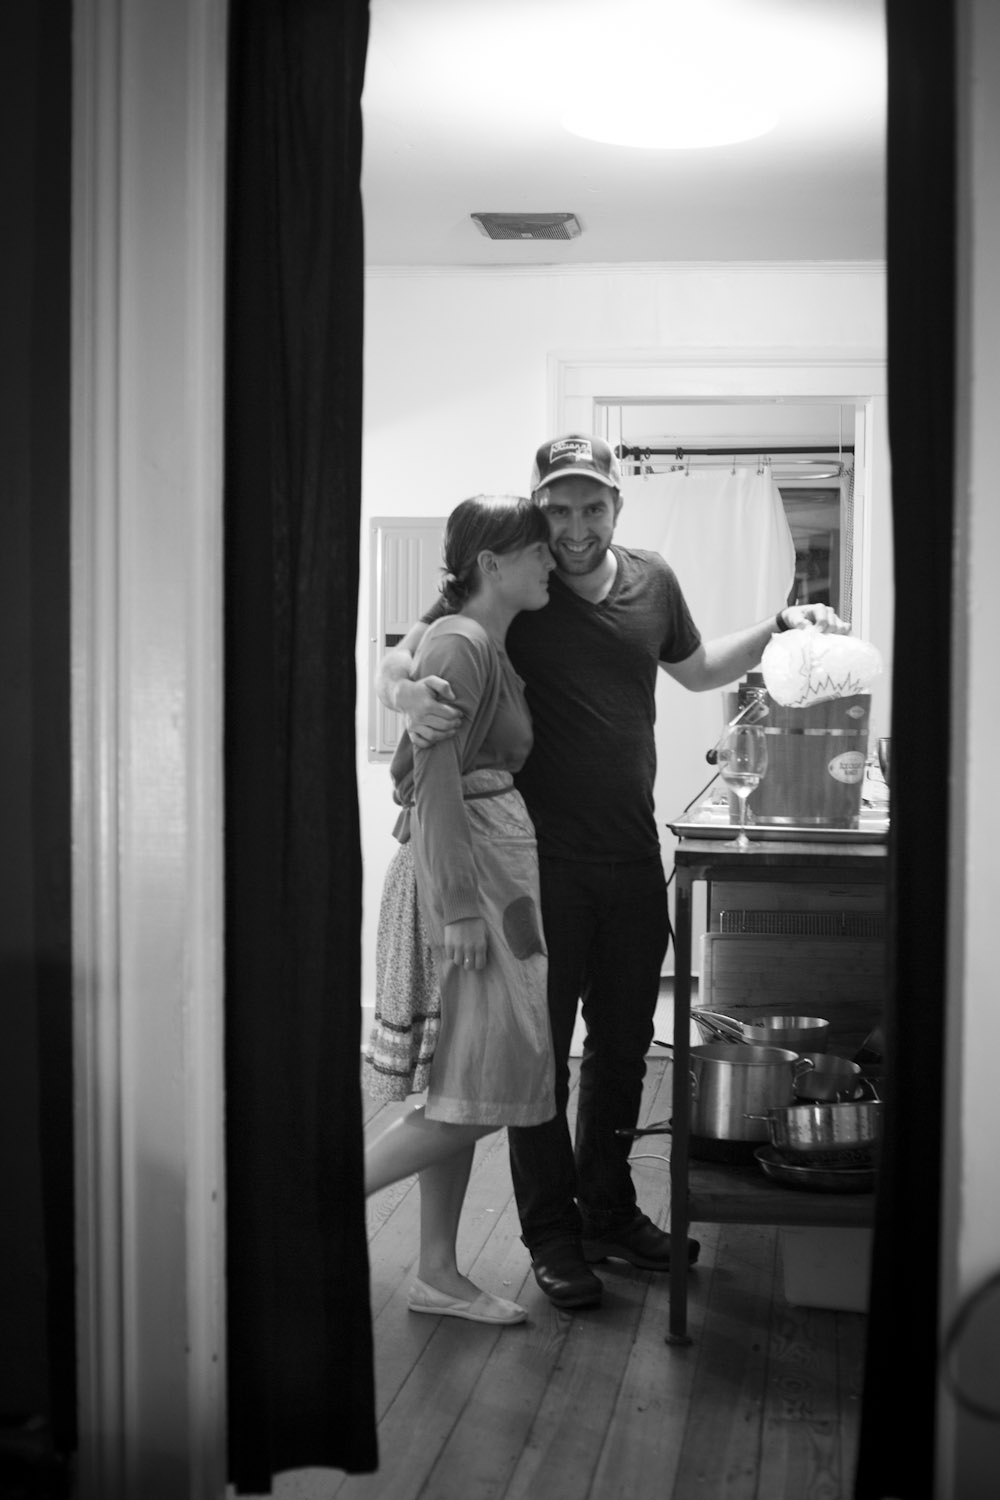 nate and diana in the kitchen-6510.jpg